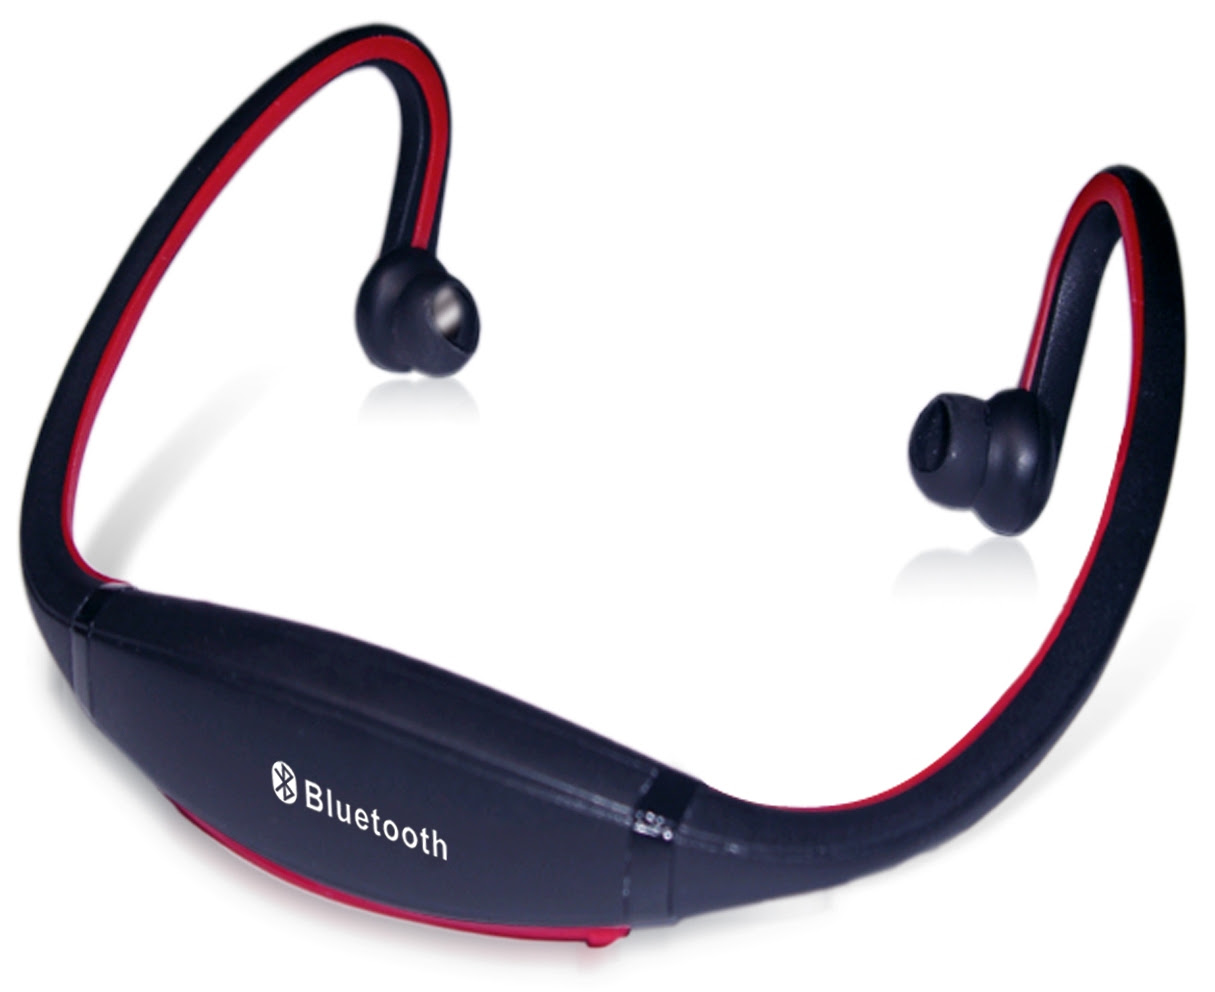 S69 BLUETOOTH HEADSET DRIVER FOR WINDOWS